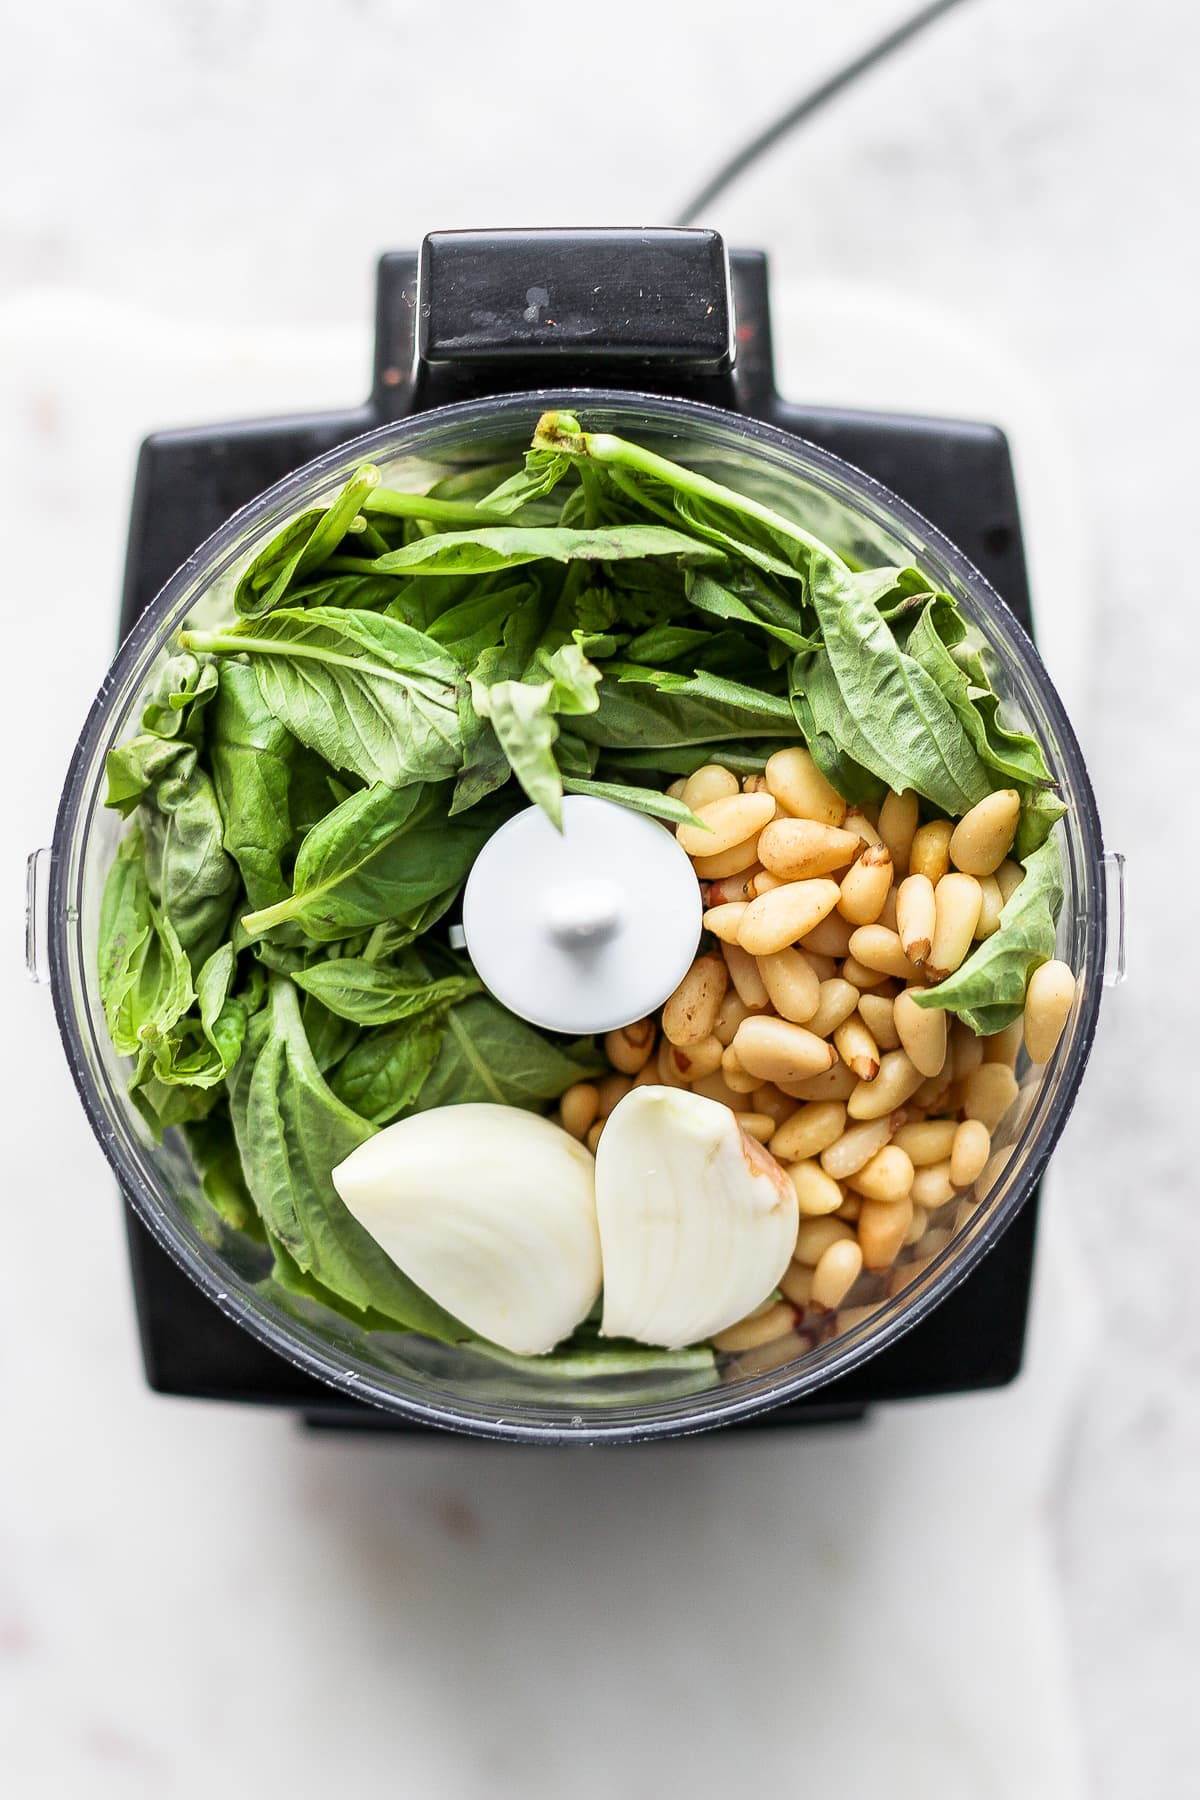 A top shot of a food processor filled with fresh basil, pine nuts and garlic cloves.